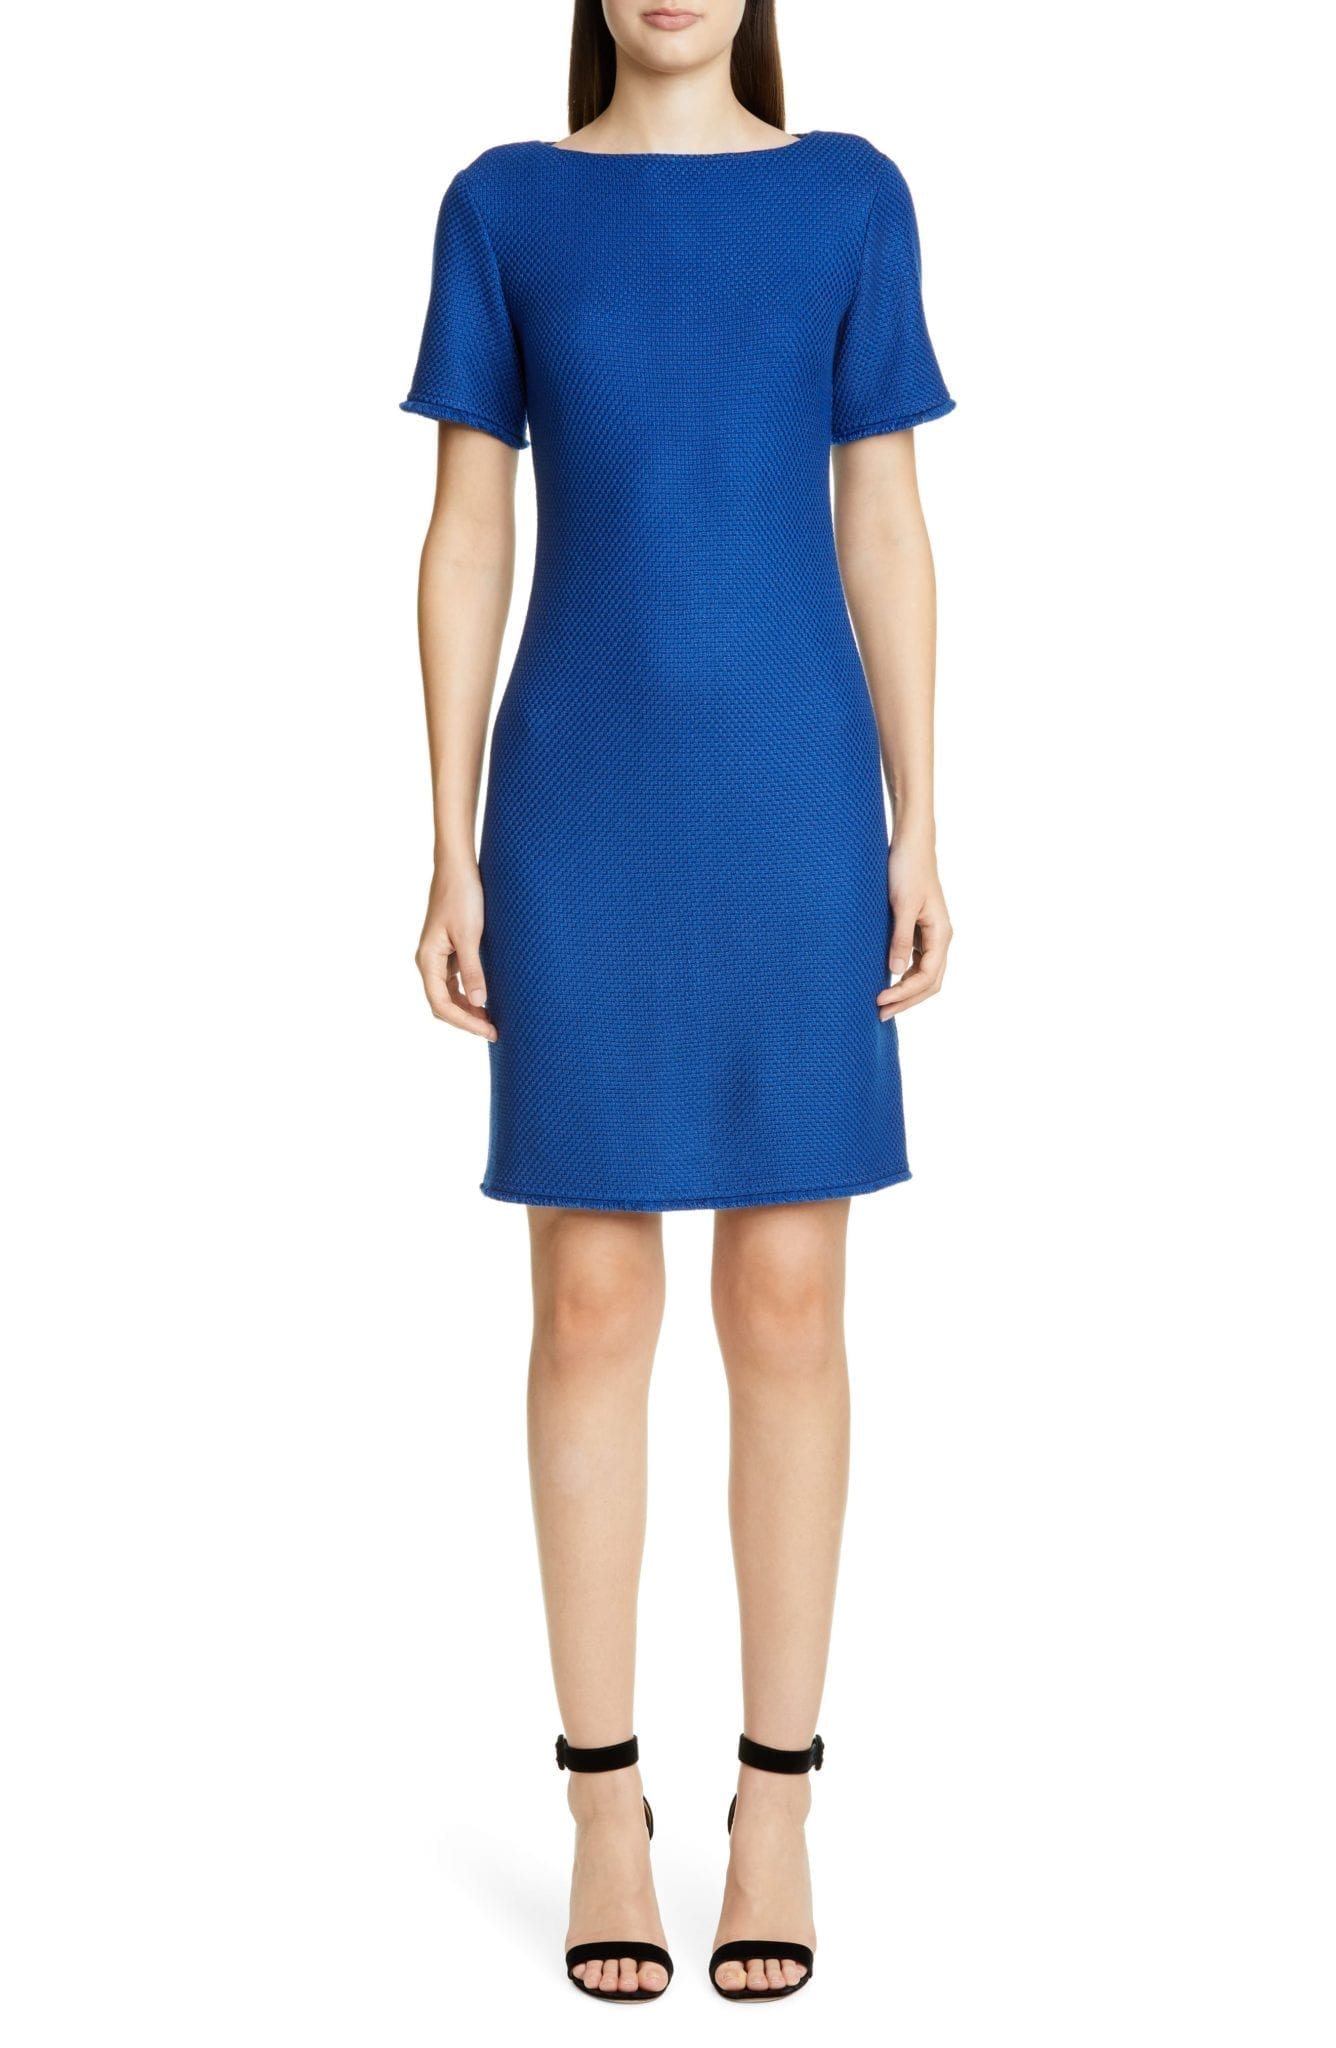 ST. JOHN COLLECTION Gridded Texture Knit Sheath Dress